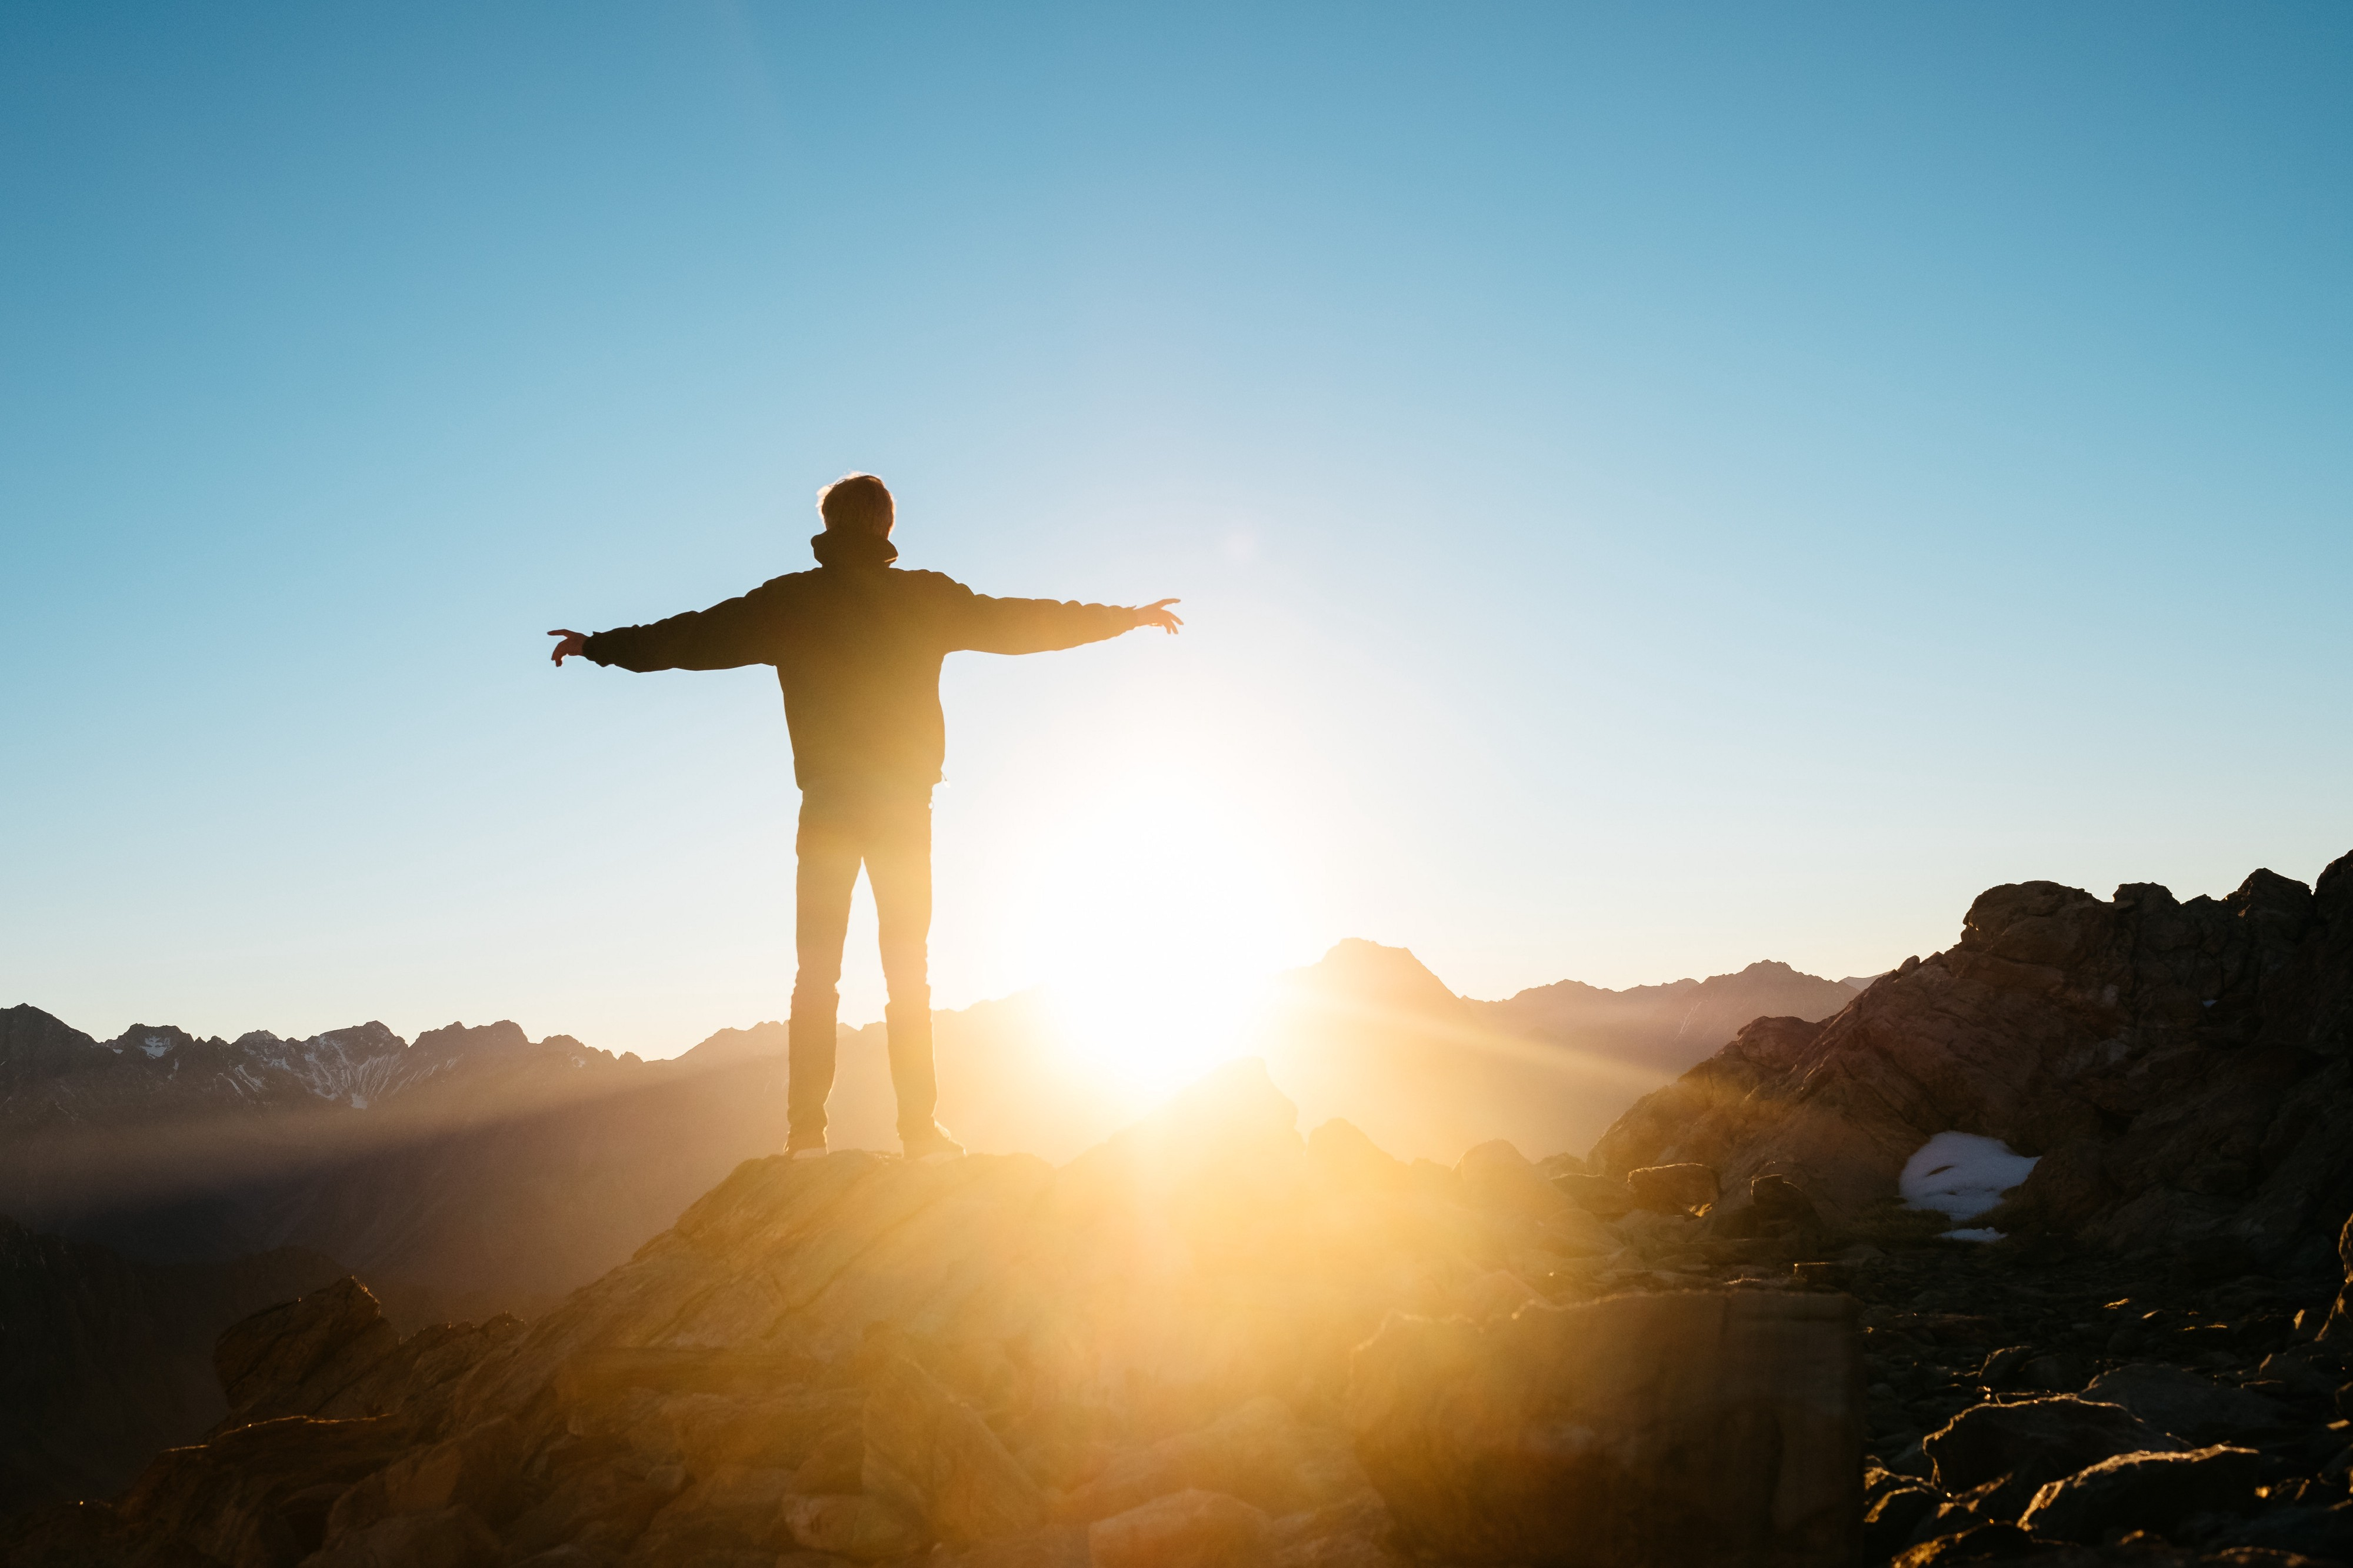 A man stands atop a mountain, as the sun rises before him. He has his arms outstretched as if he is free and liberated.